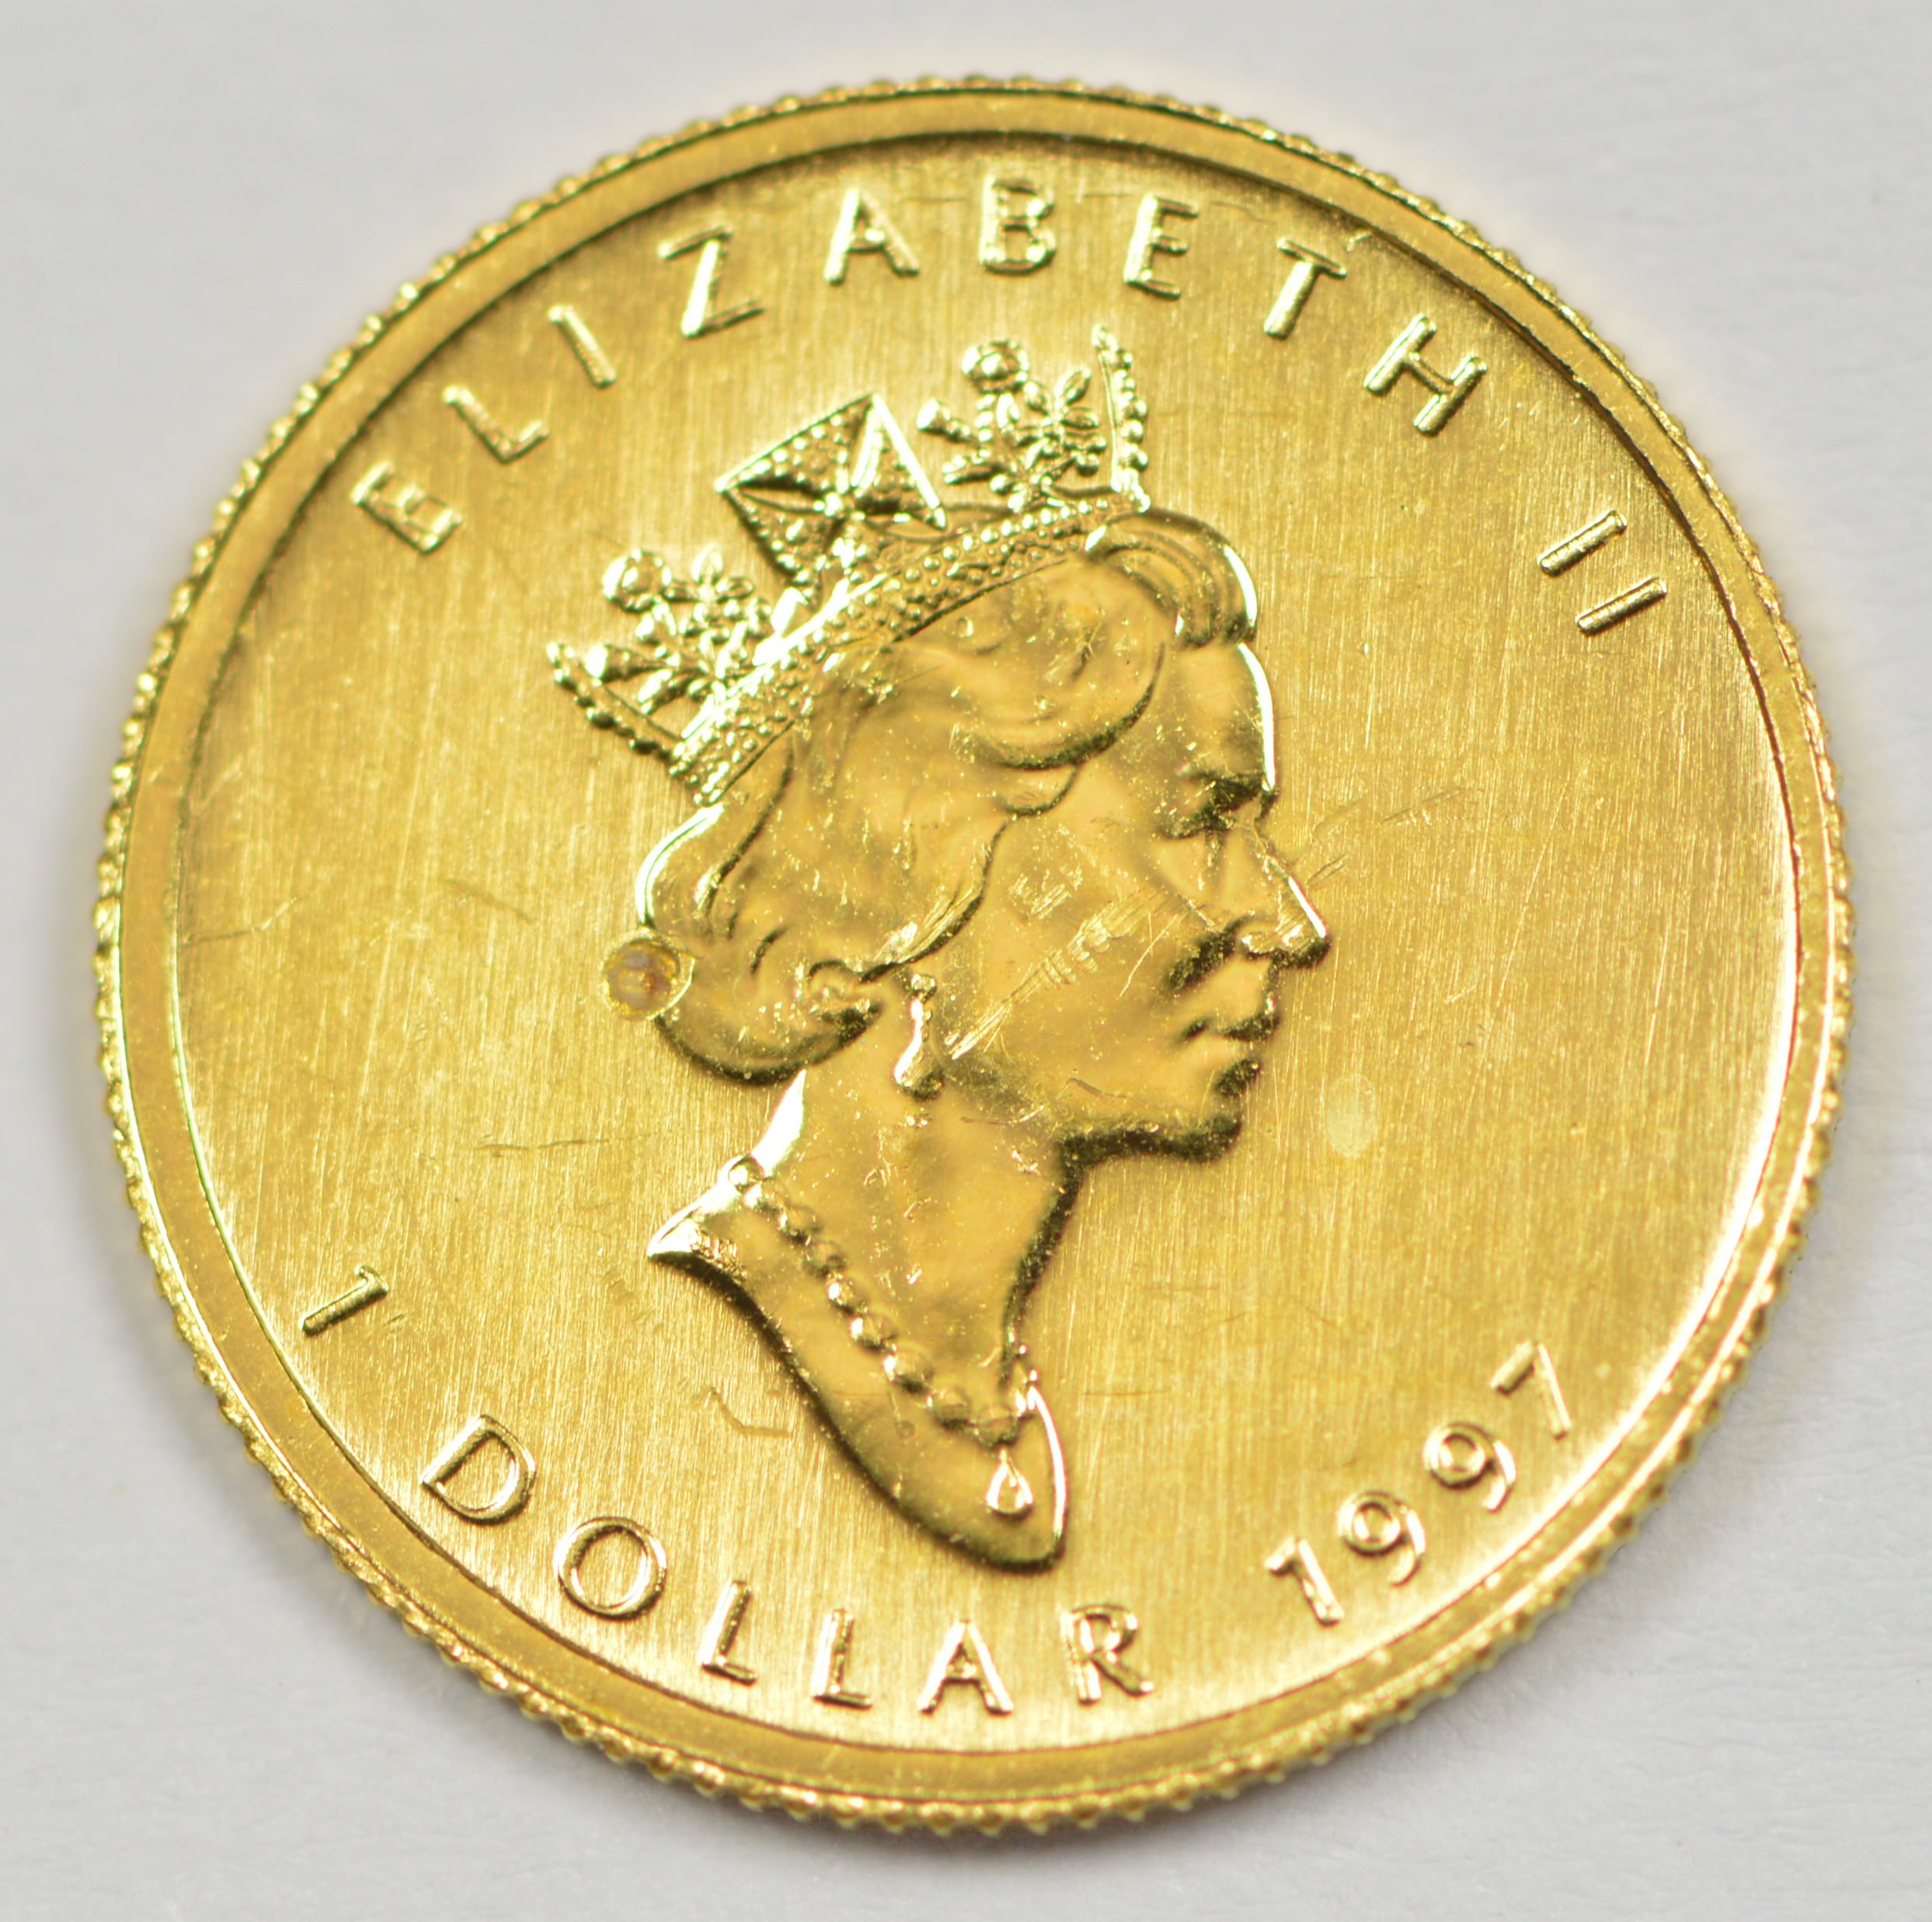 1997 Canada 1 999 Gold Coin Agw 1 20 Oz Property Room